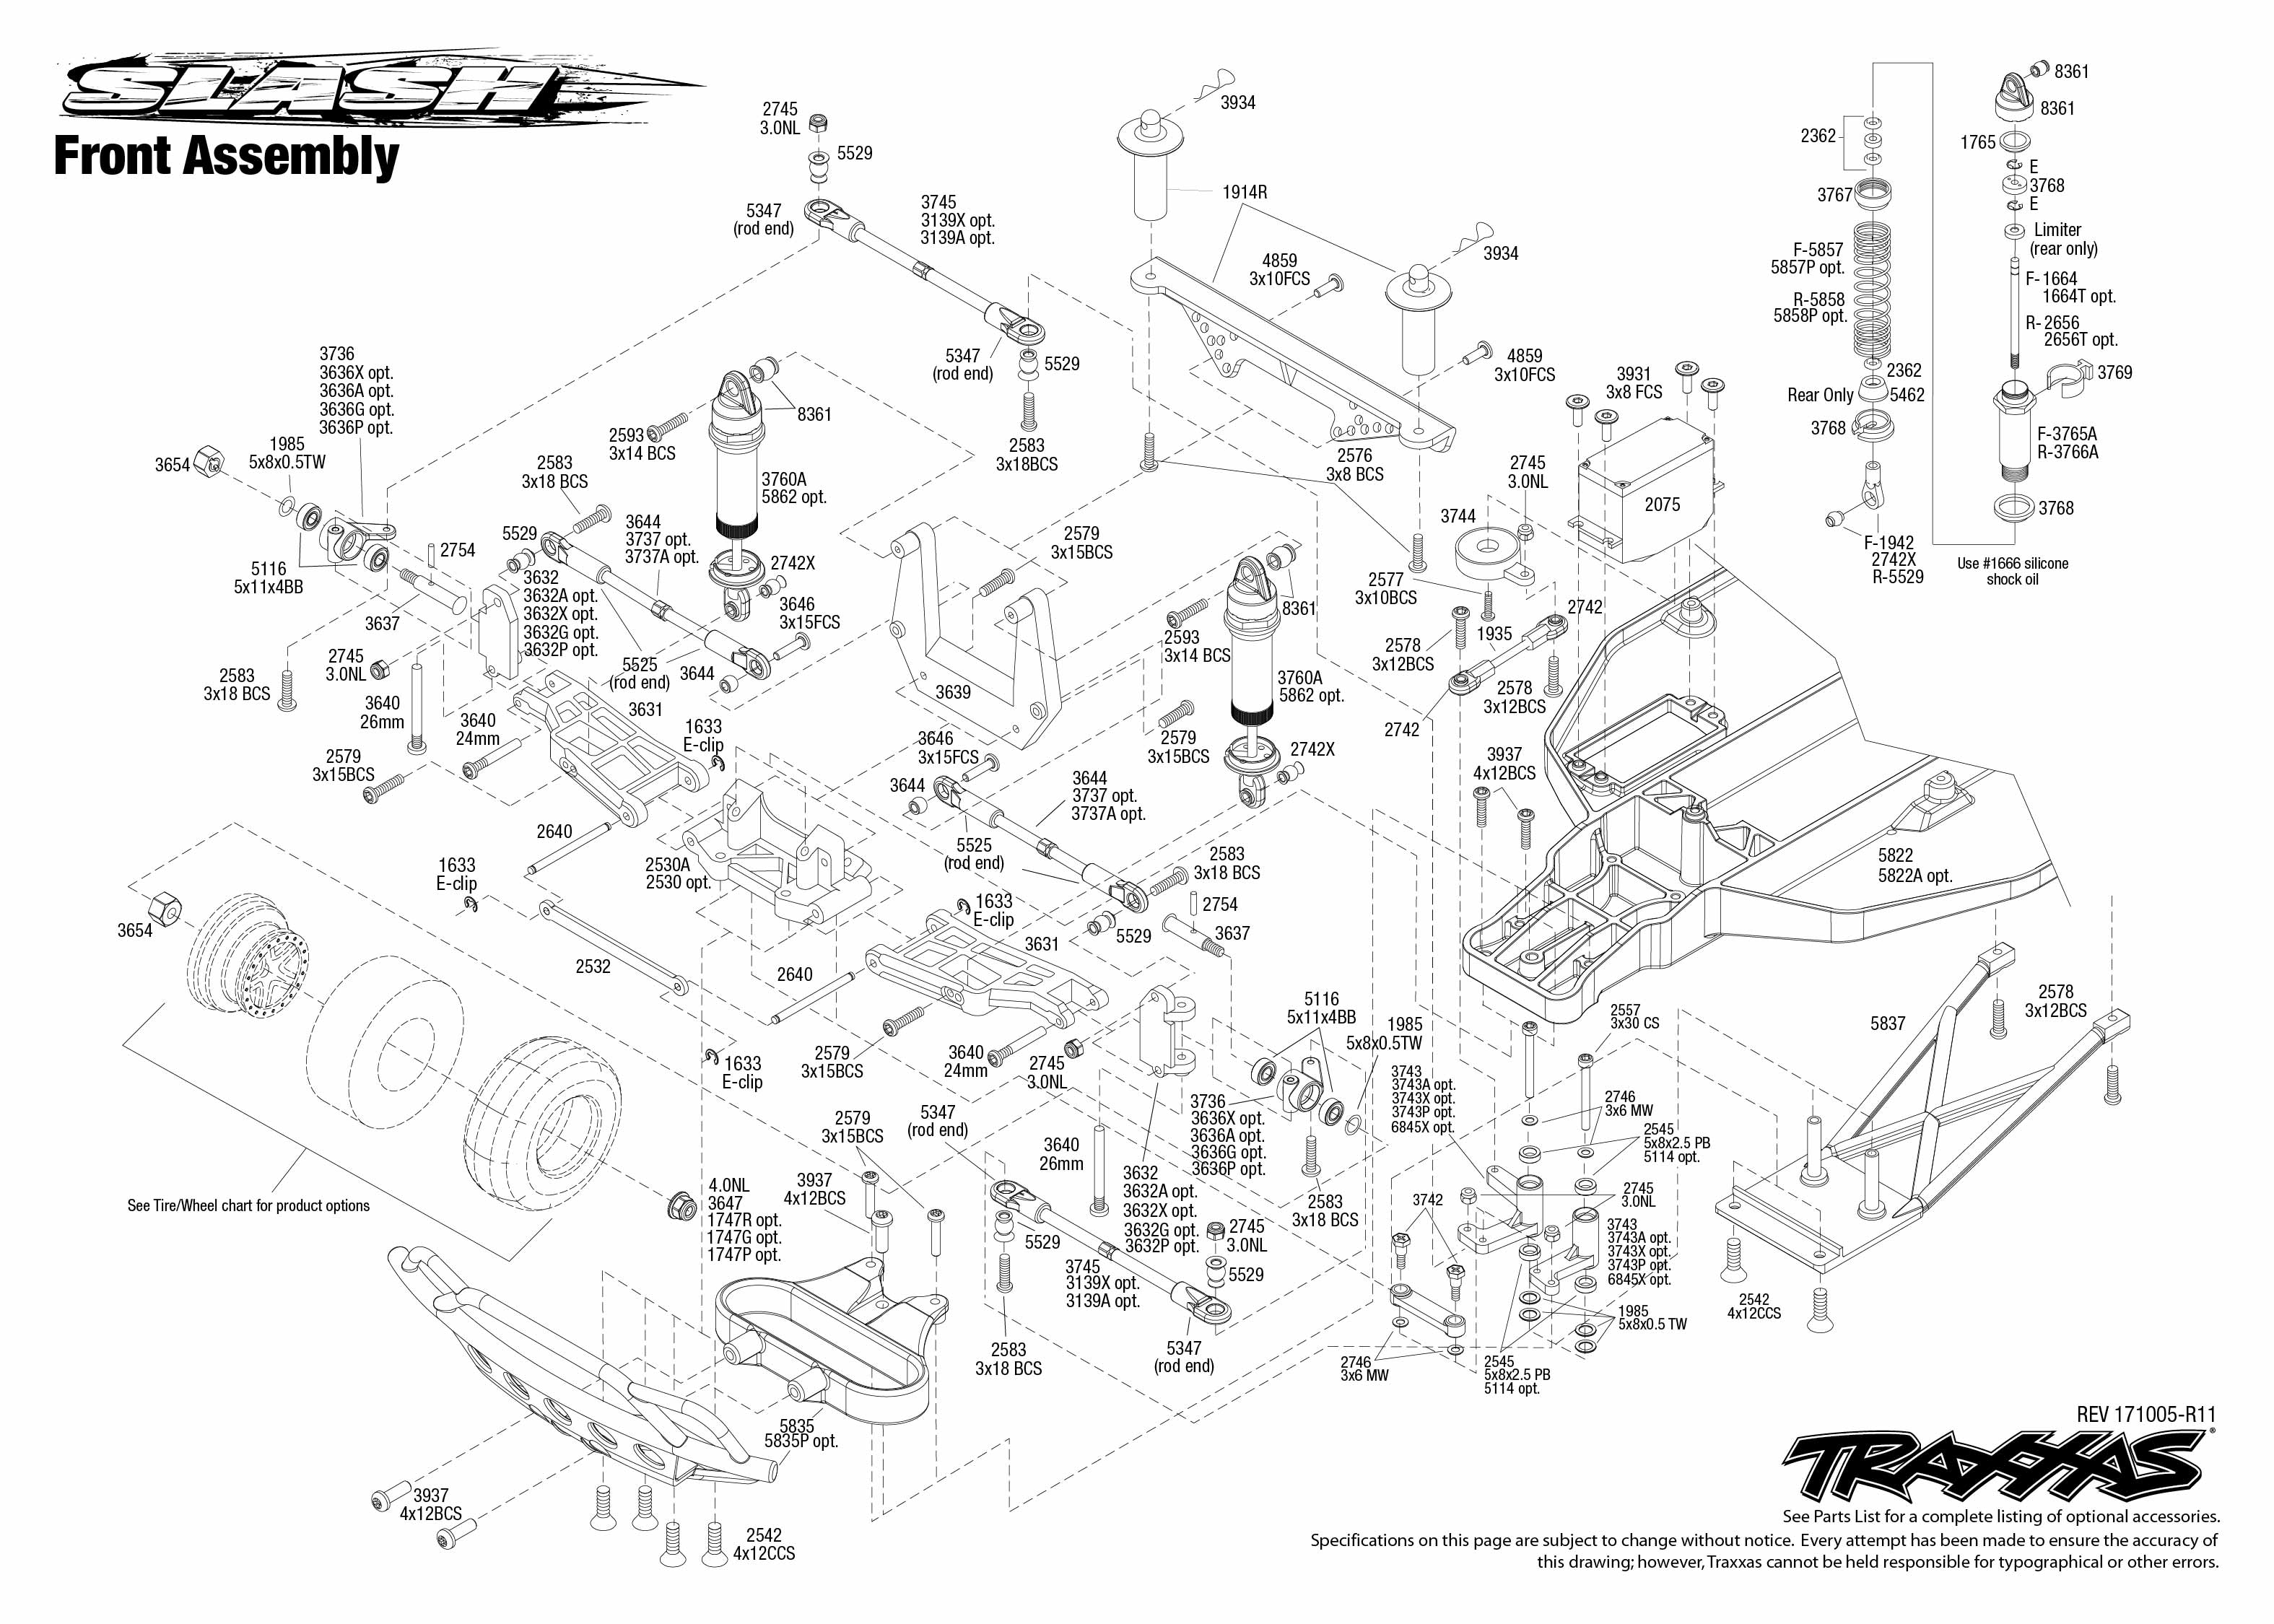 Traxxas Wiring Diagram - Wiring Diagram Article on